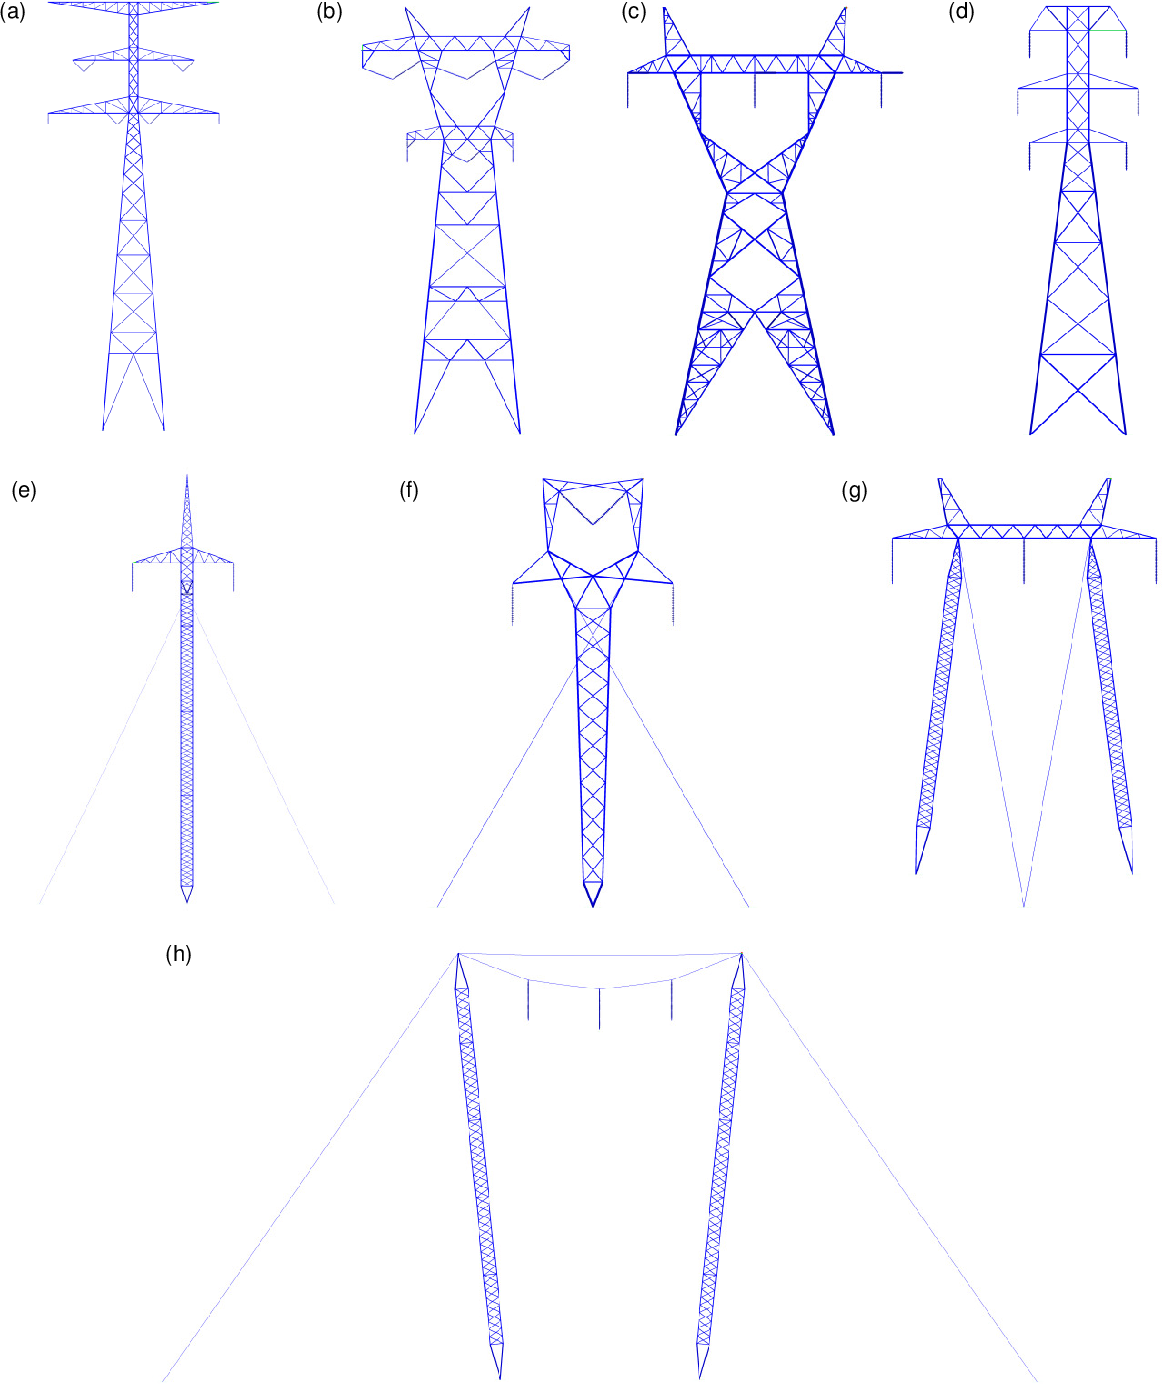 Pdf Seismic Response Of Transmission Line Guyed Towers With And Without The Interaction Of Tower Conductor Coupling Semantic Scholar